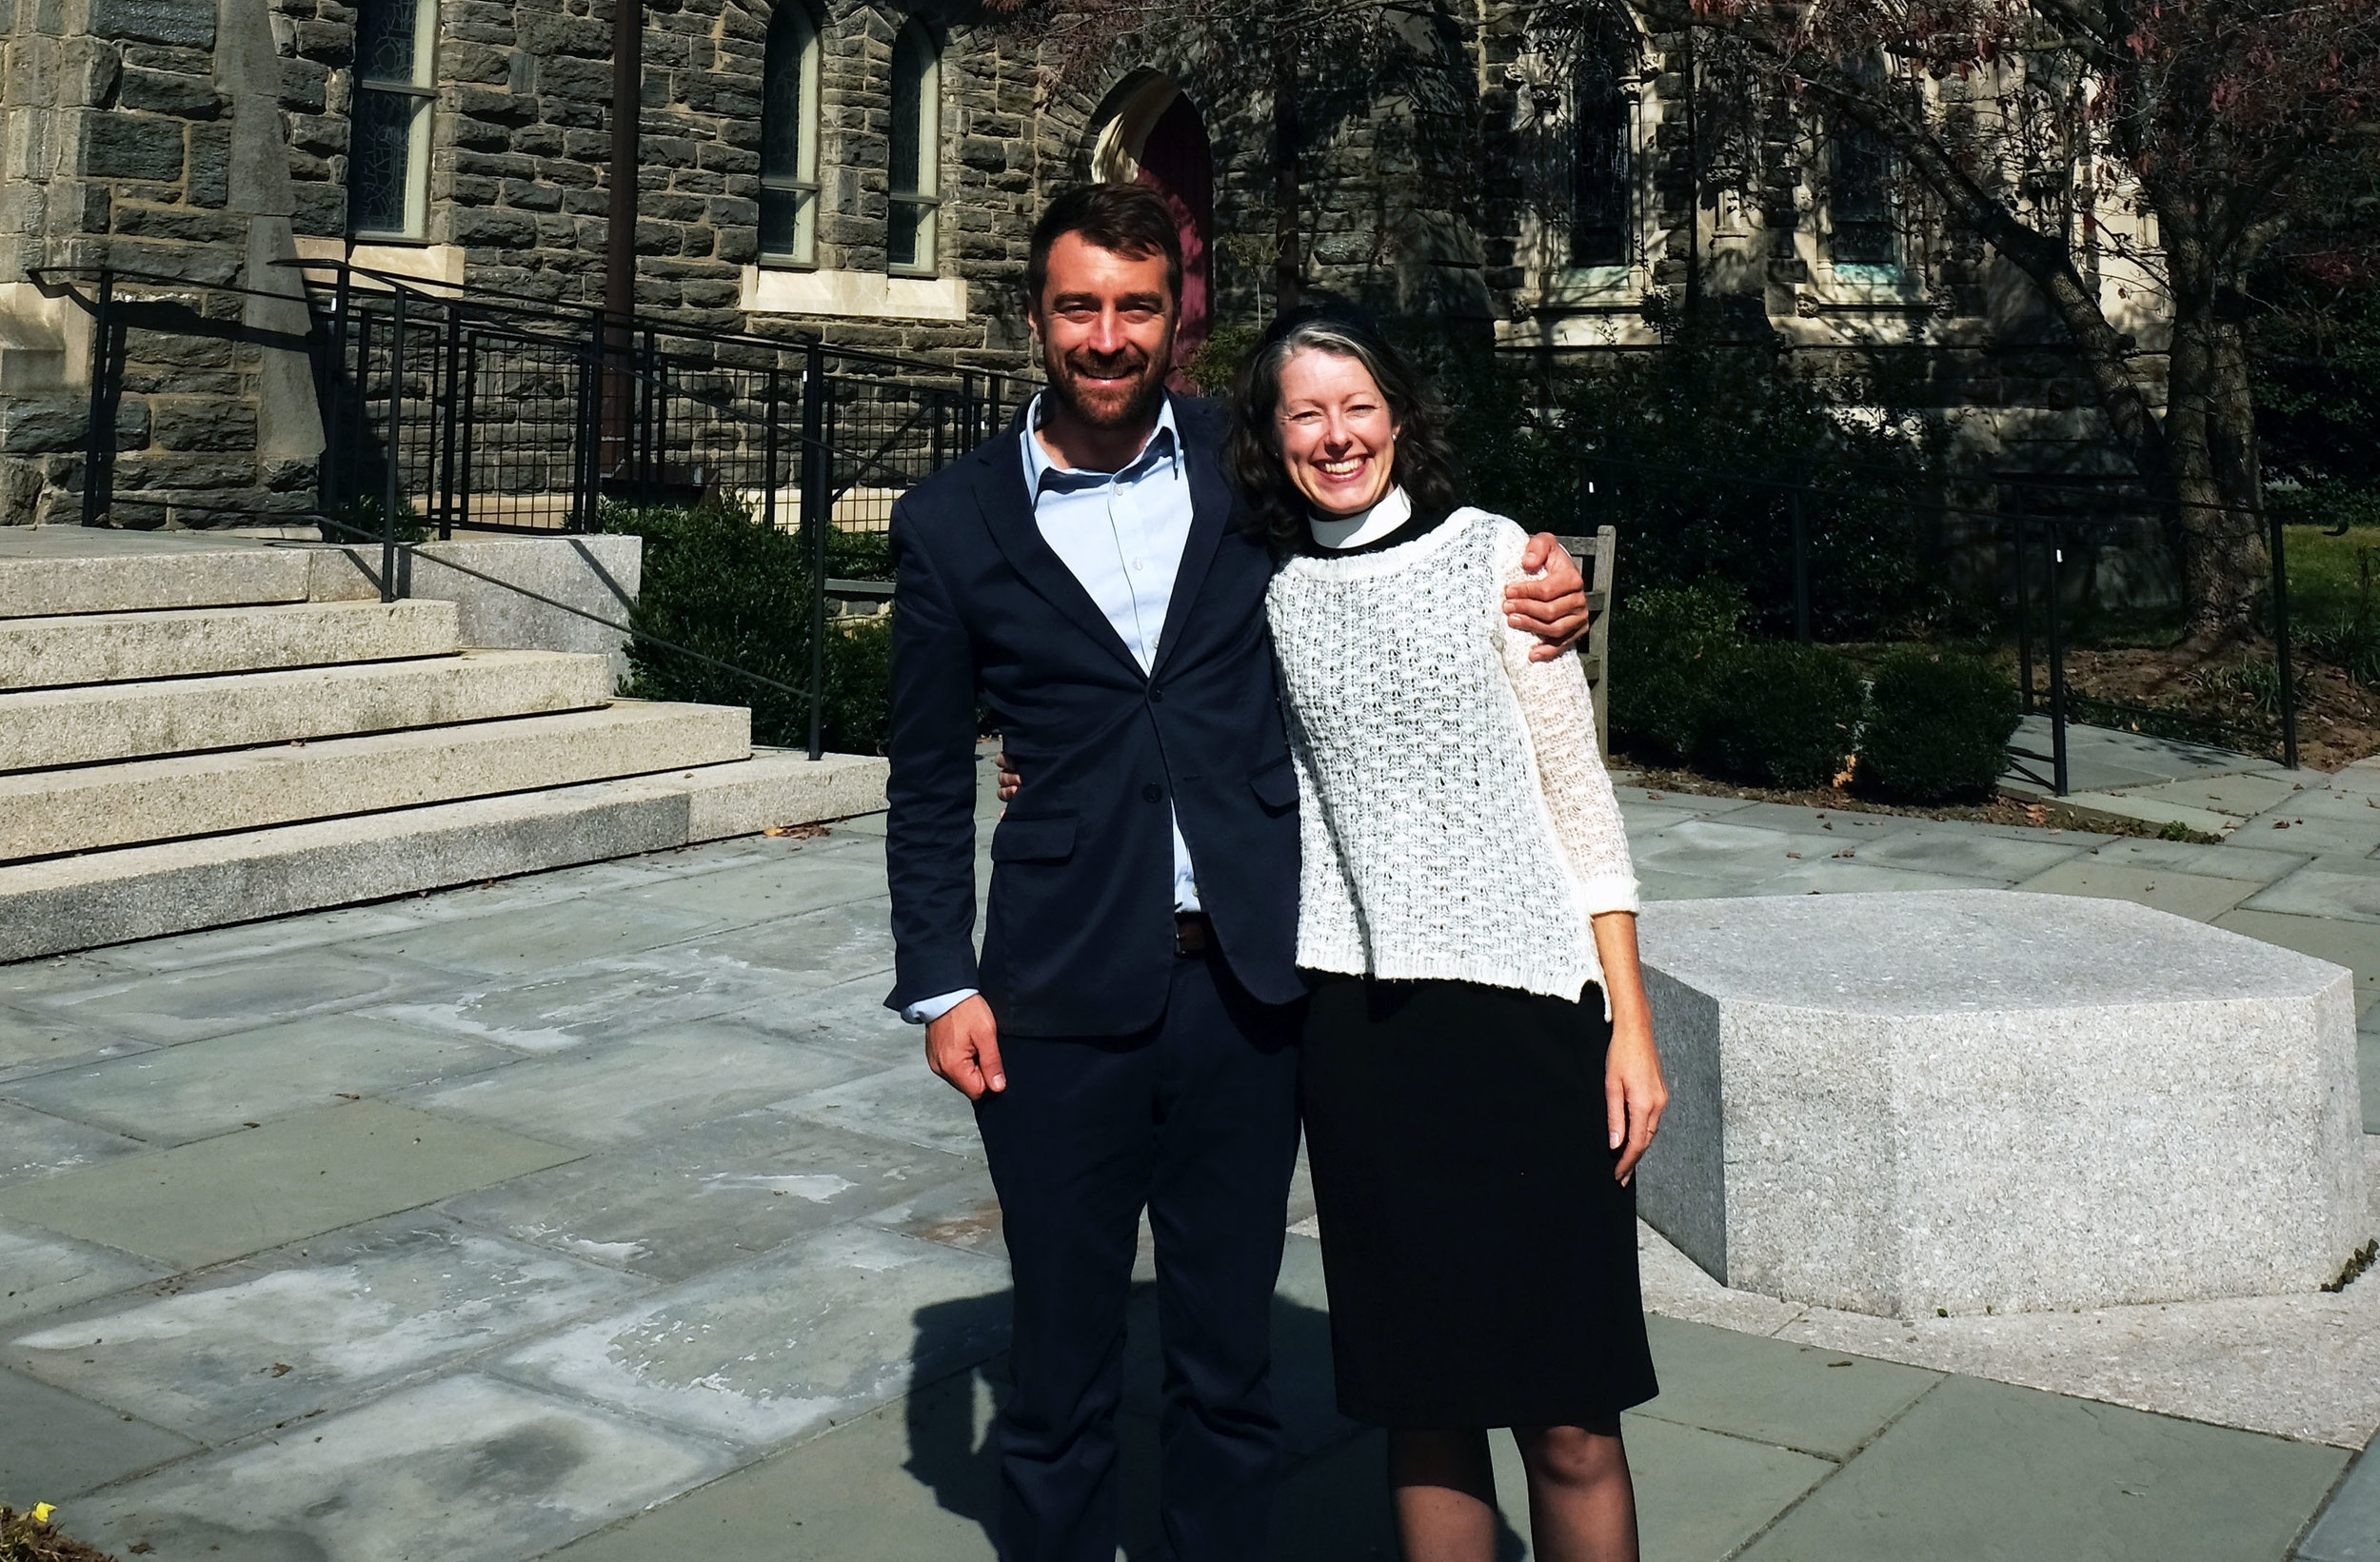 Anne Thatcher (pictured here with Cristosal Executive Director Noah Bullock) weaves Cristosal's mission into her vocation as an Episcopal priest in Philadelphia, Pennsylvania.